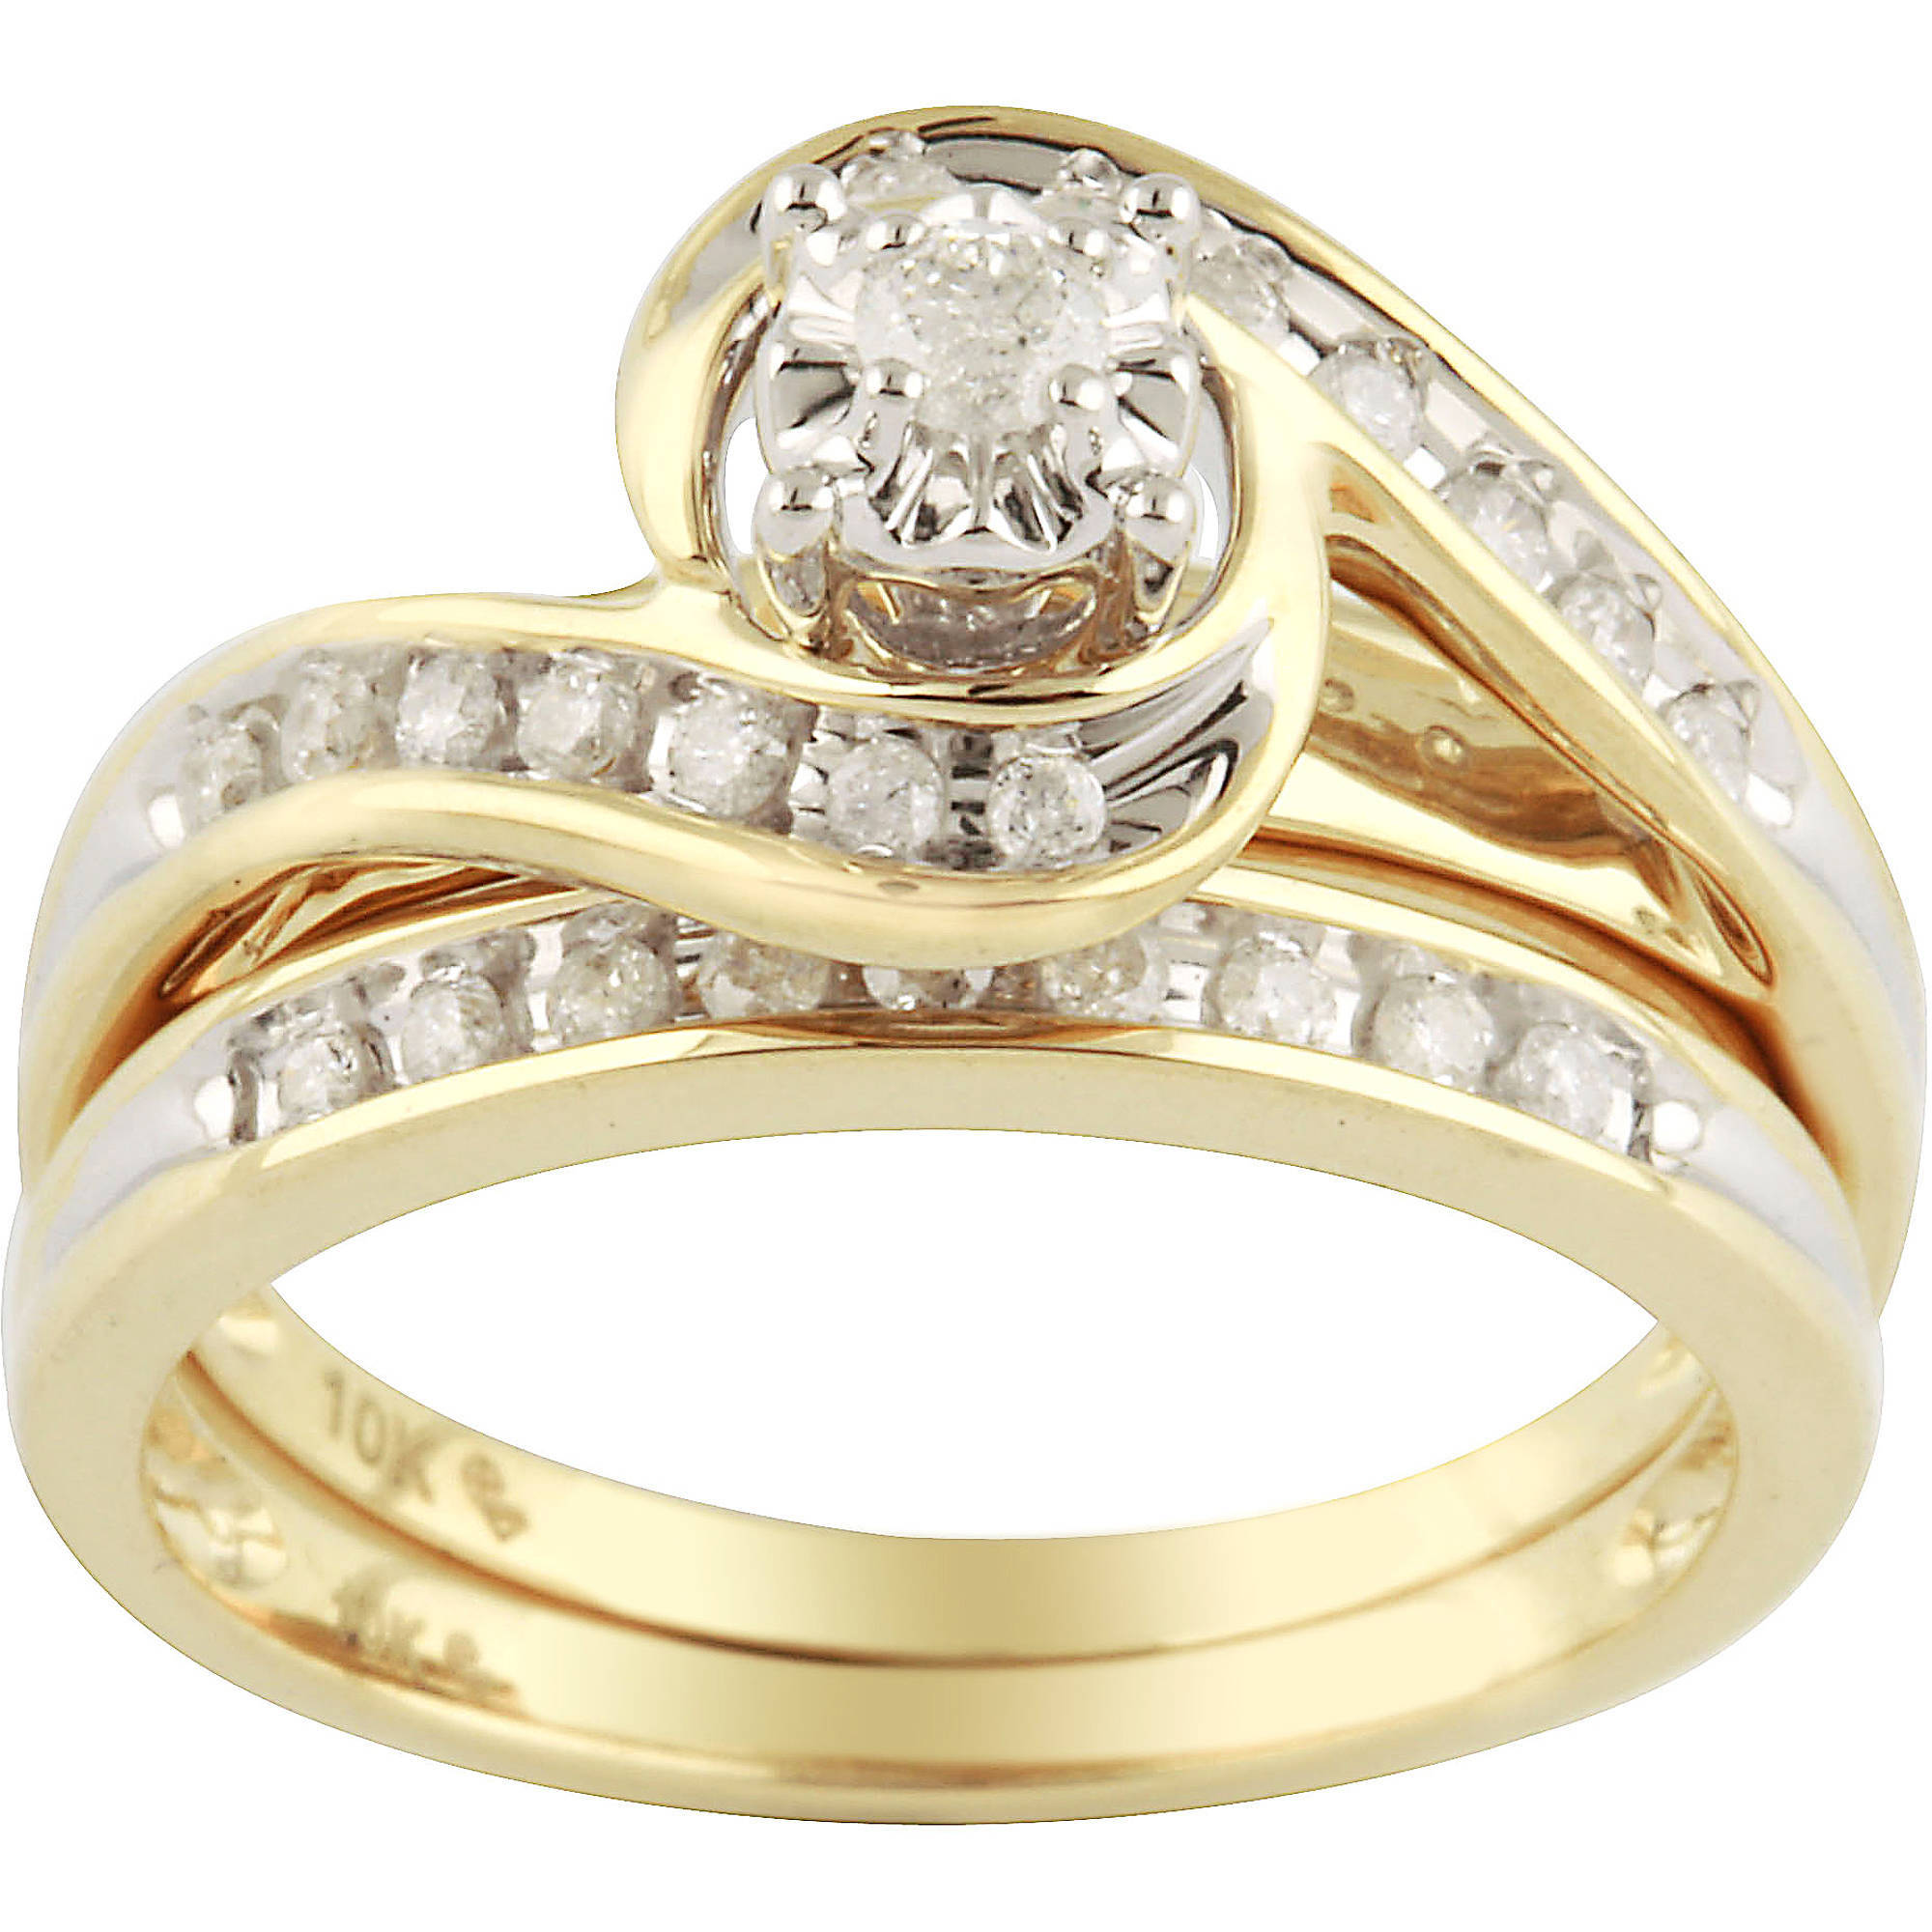 1/3 Carat Diamond Yellow Gold Bypass Bridal Ring Set - Walmart.com